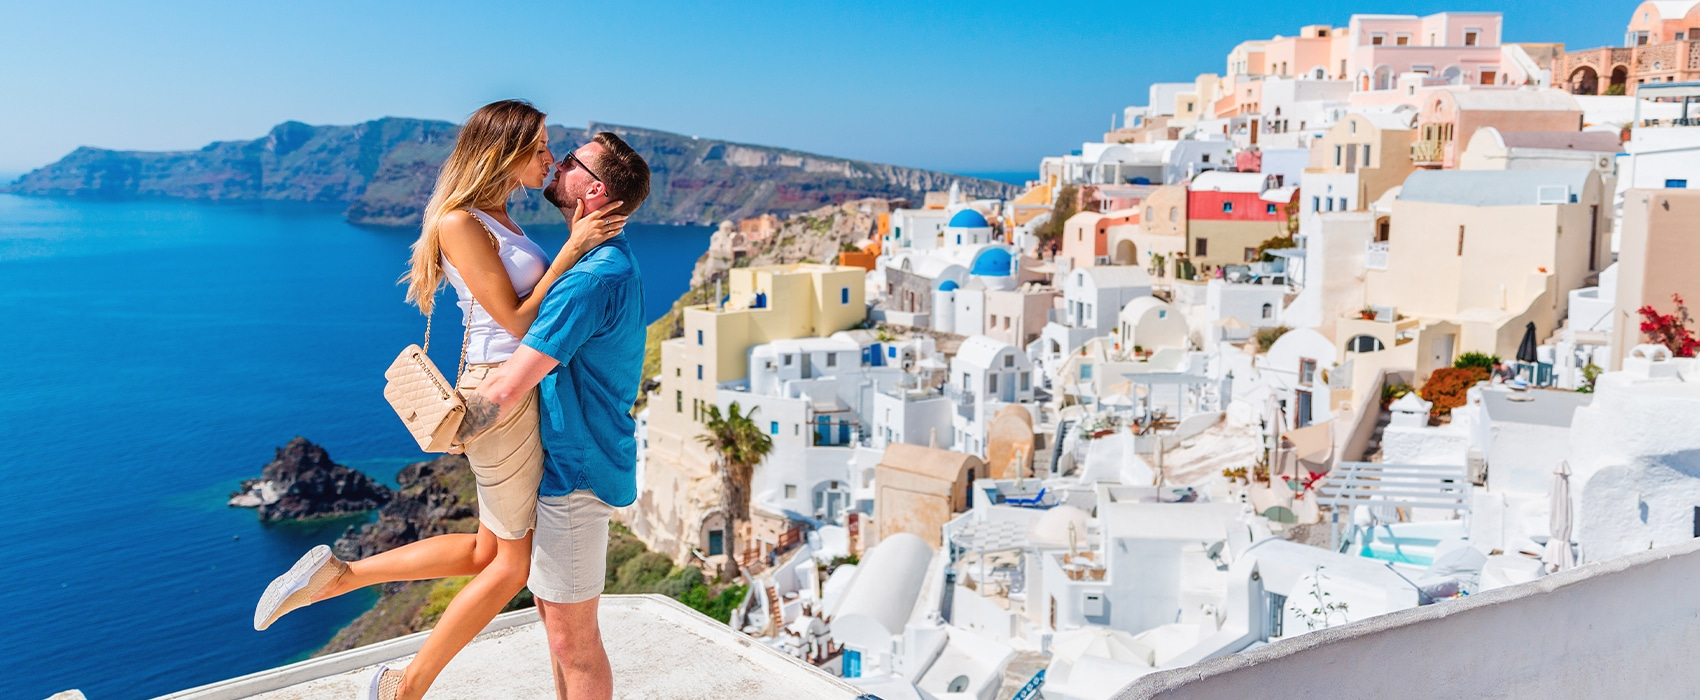 Itinerary | Desire Greek Islands cruise 2022